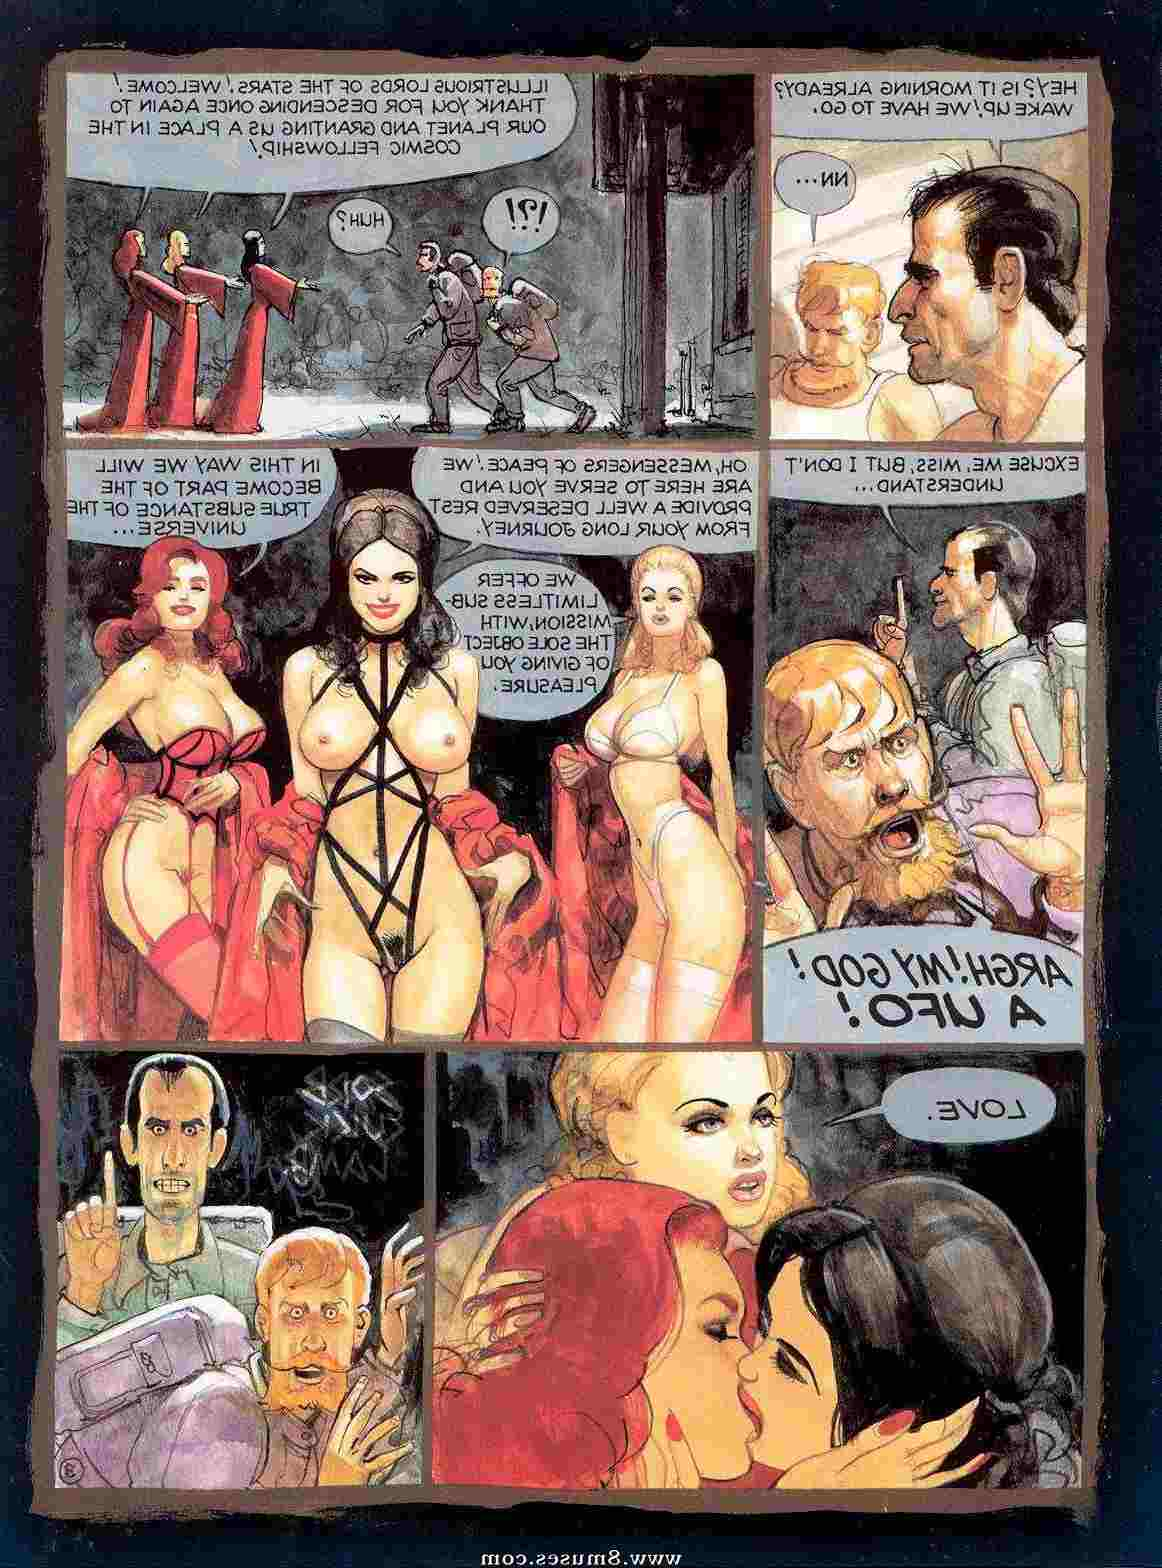 Ignacio-Noe-Comics/Out-of-This-World Out_of_This_World__8muses_-_Sex_and_Porn_Comics_3.jpg